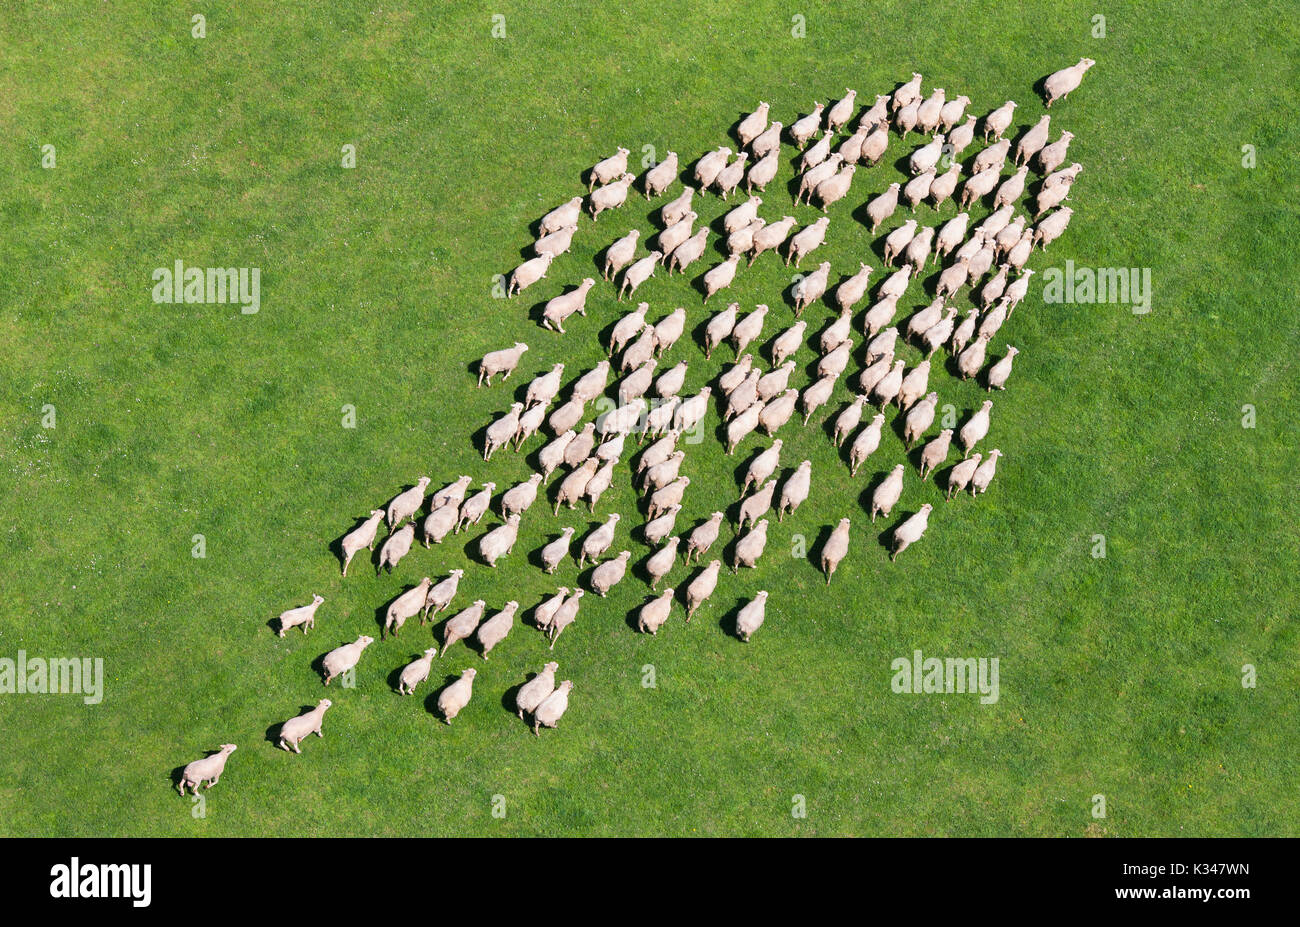 Aerial view of a herd of sheep - Stock Image